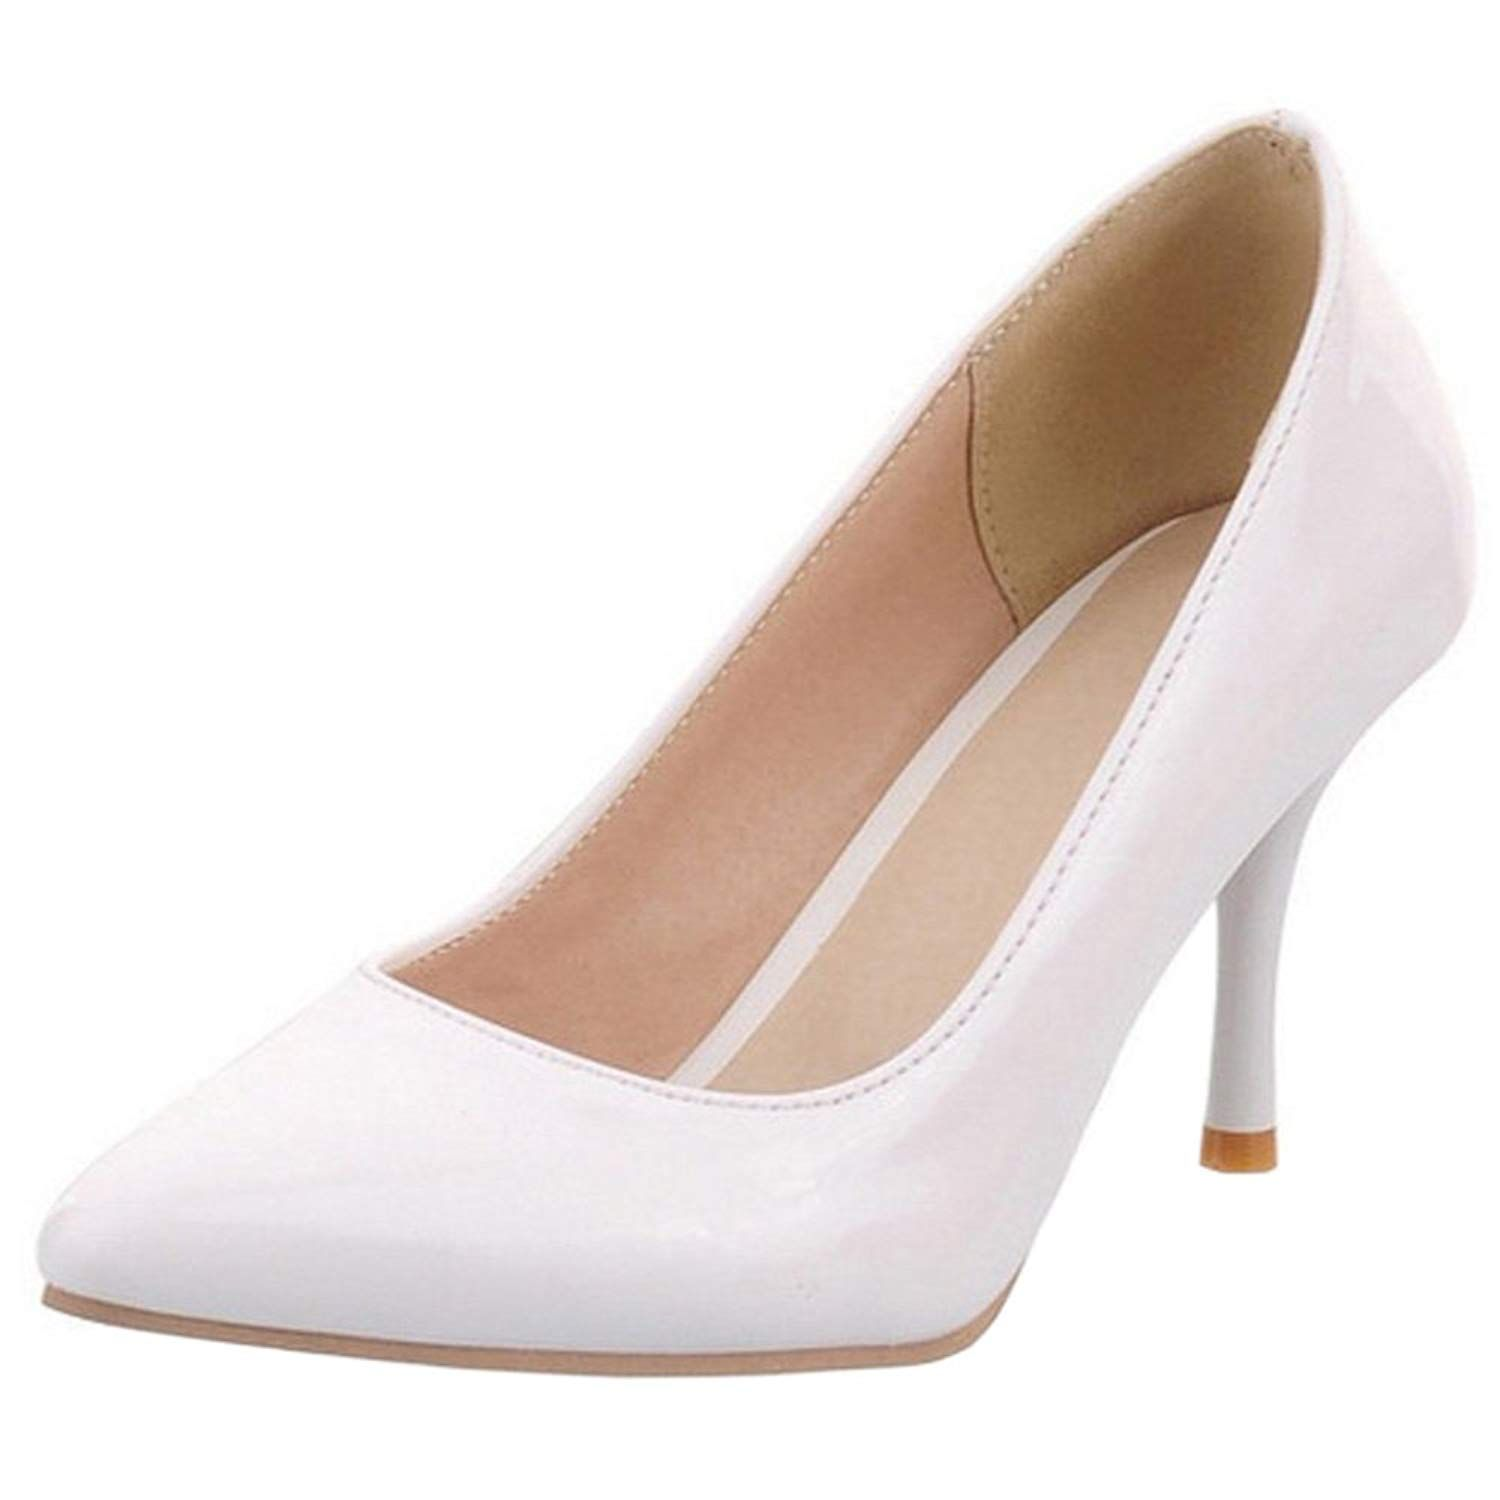 5f7ffcf7e5b1b TAOFFEN Women Classic Kitten Heels Pumps Basic Office Dress Shoes Size  US1-16. Item Specifics. Women's Shoes,Pumps. #shoes #pumps #fashion #style  #stylish # ...